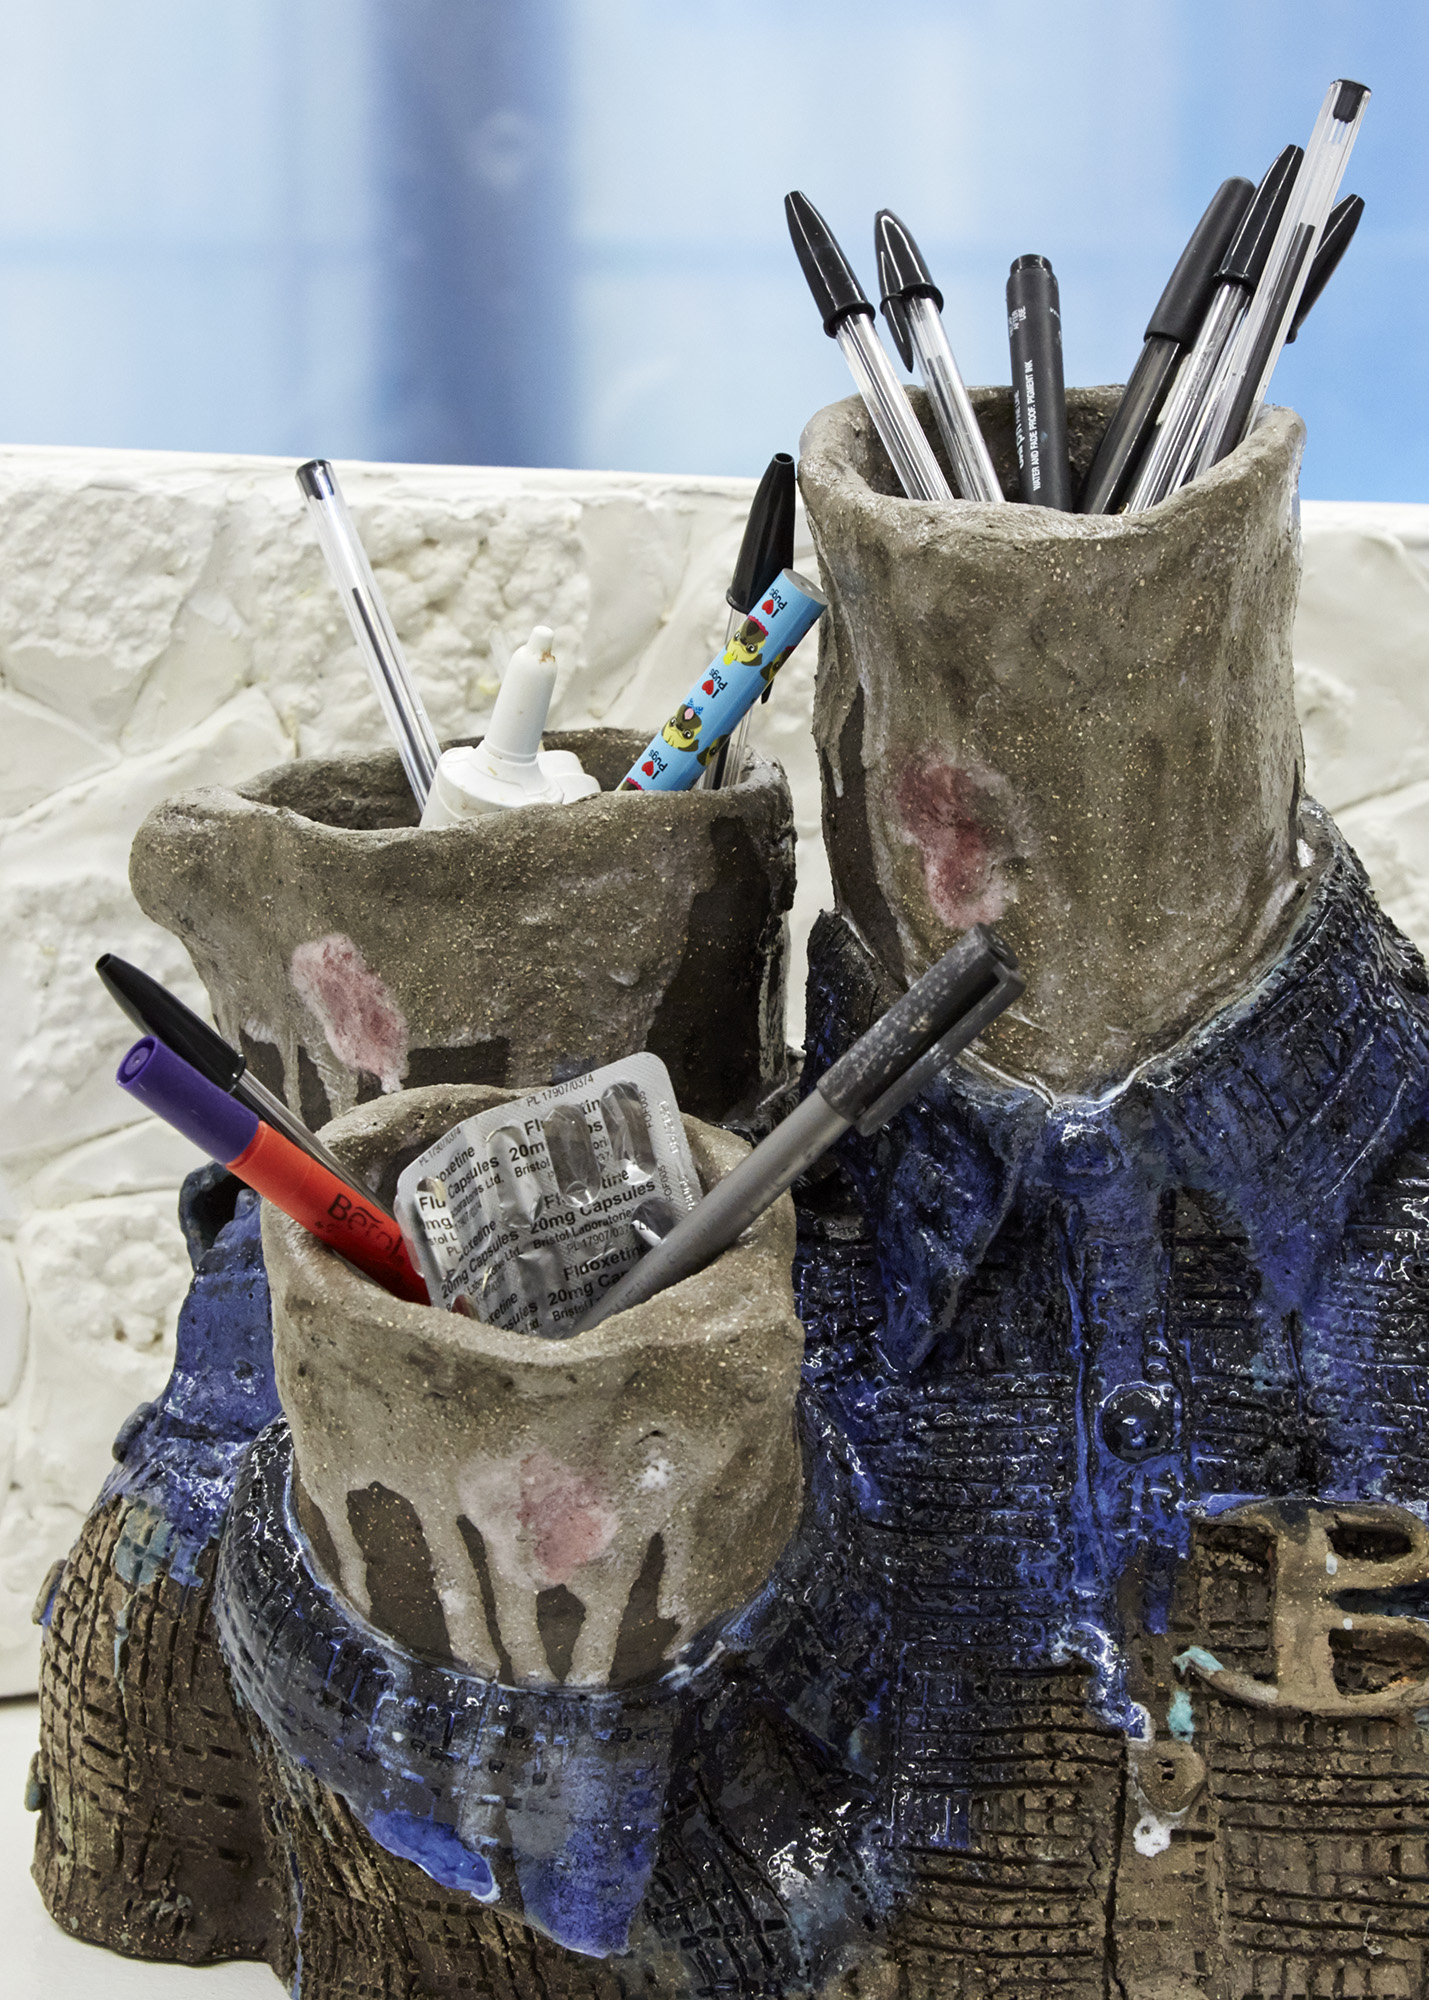 Love bites (detail) Glazed ceramic, studio pens, tampons, fluoxetine and First Defence 38 x 46 x 24cm, 2019